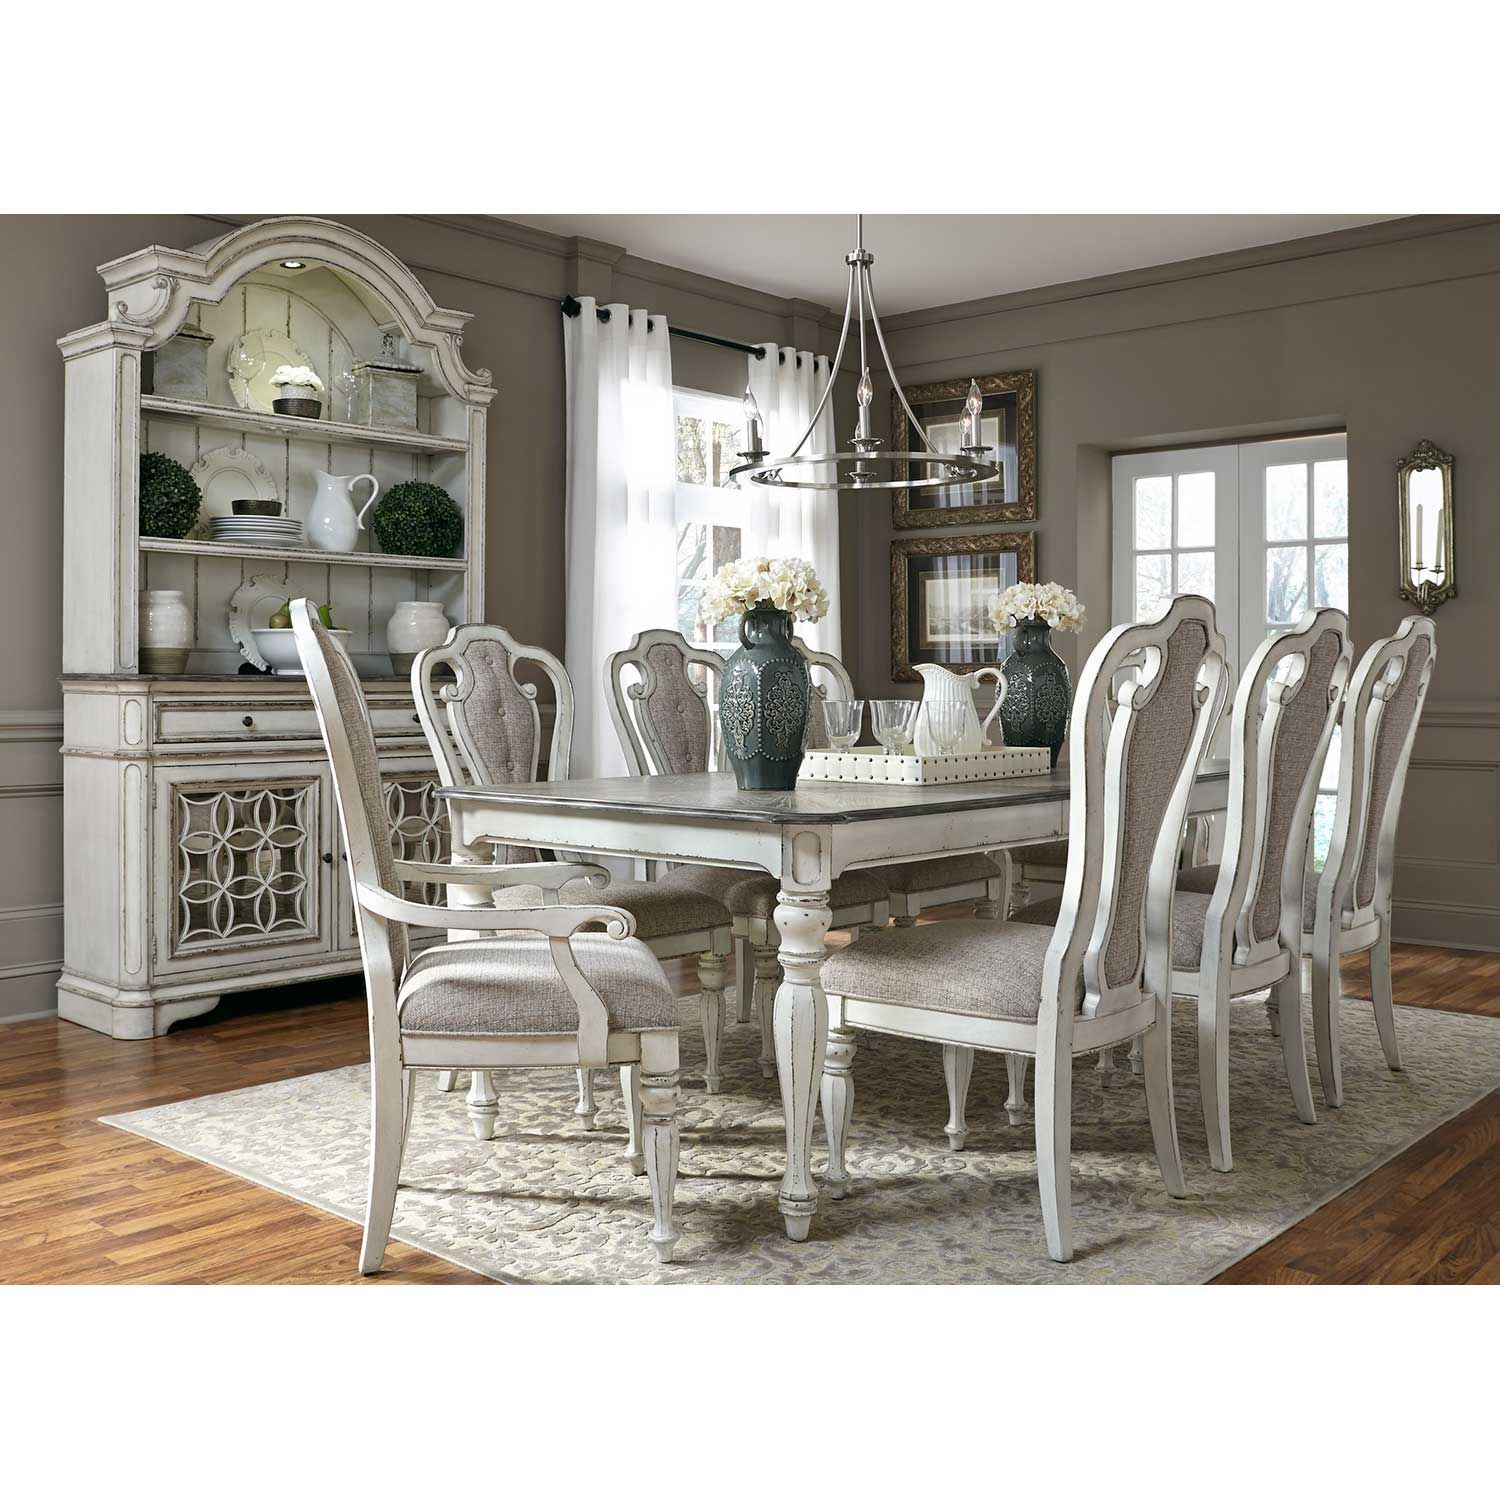 Magnolia Manor Buffet 244 Cb Liberty Furniture Afw